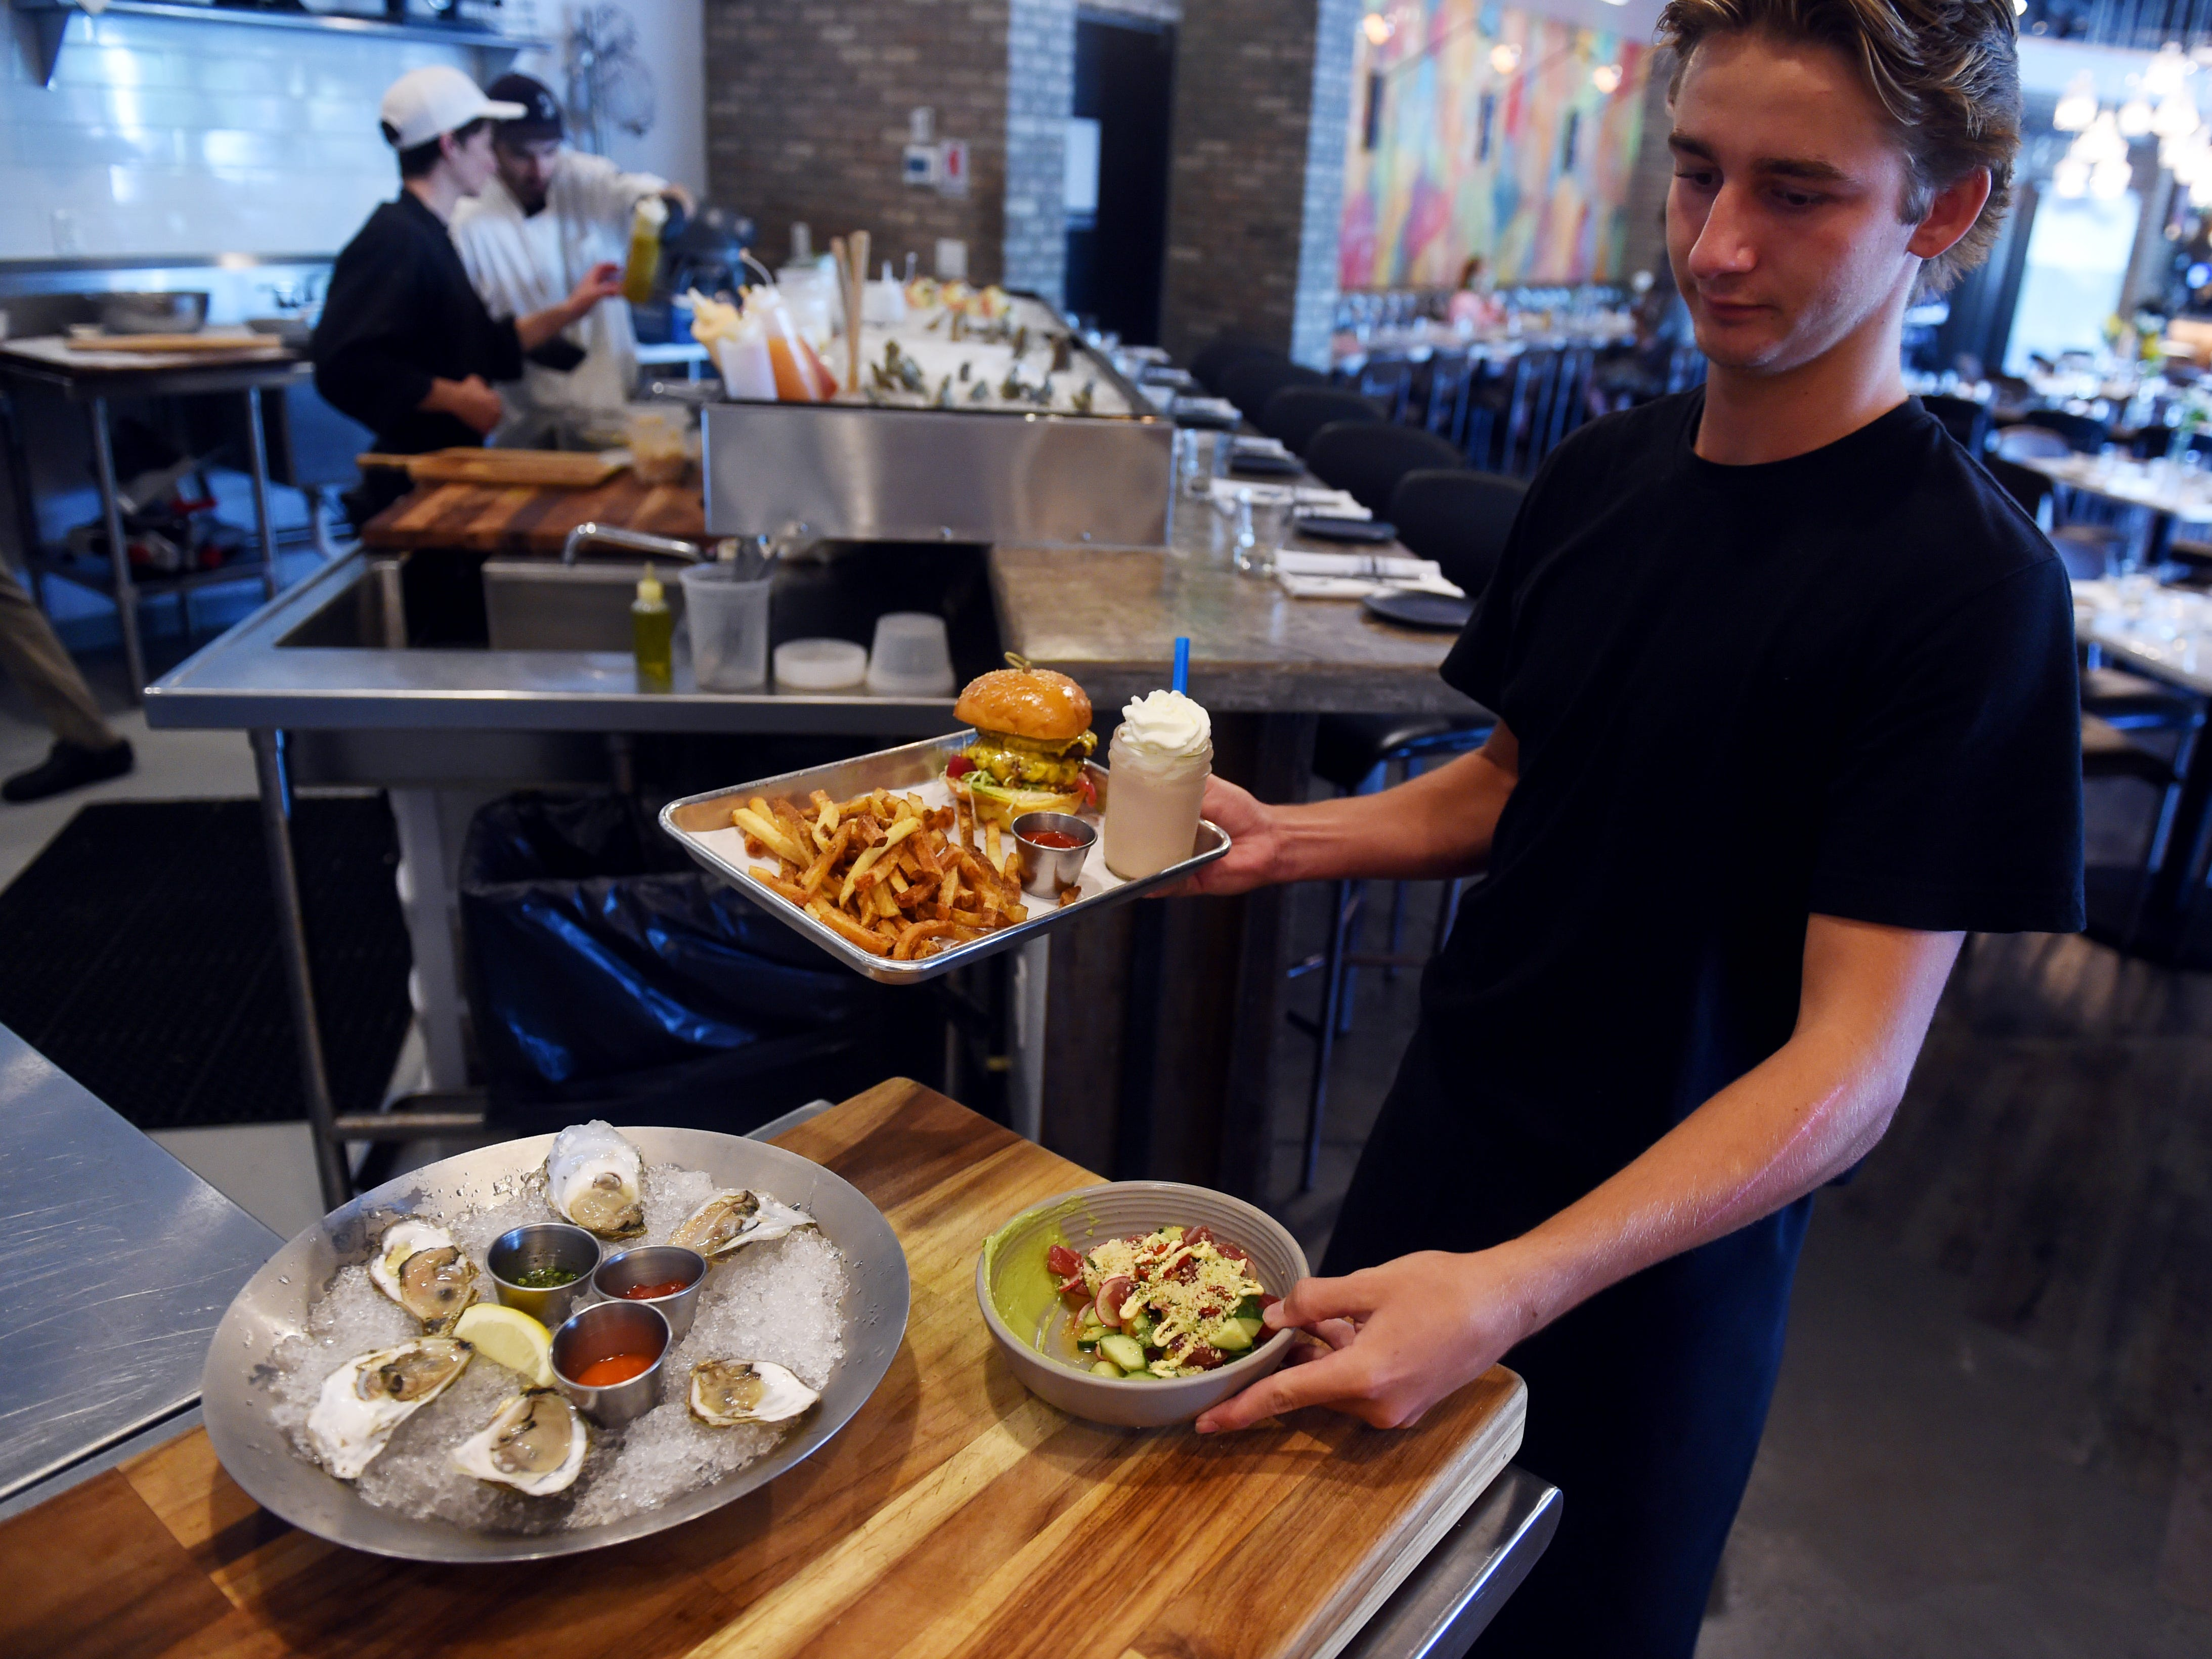 In 2013, chef Jason Stocks opened District Table & Bar in Stuart. Six years later, he doubled the size of his restaurant by moving the location to Port Salerno. District Table is a southern-focused eatery, utilizing locally sourced ingredients.